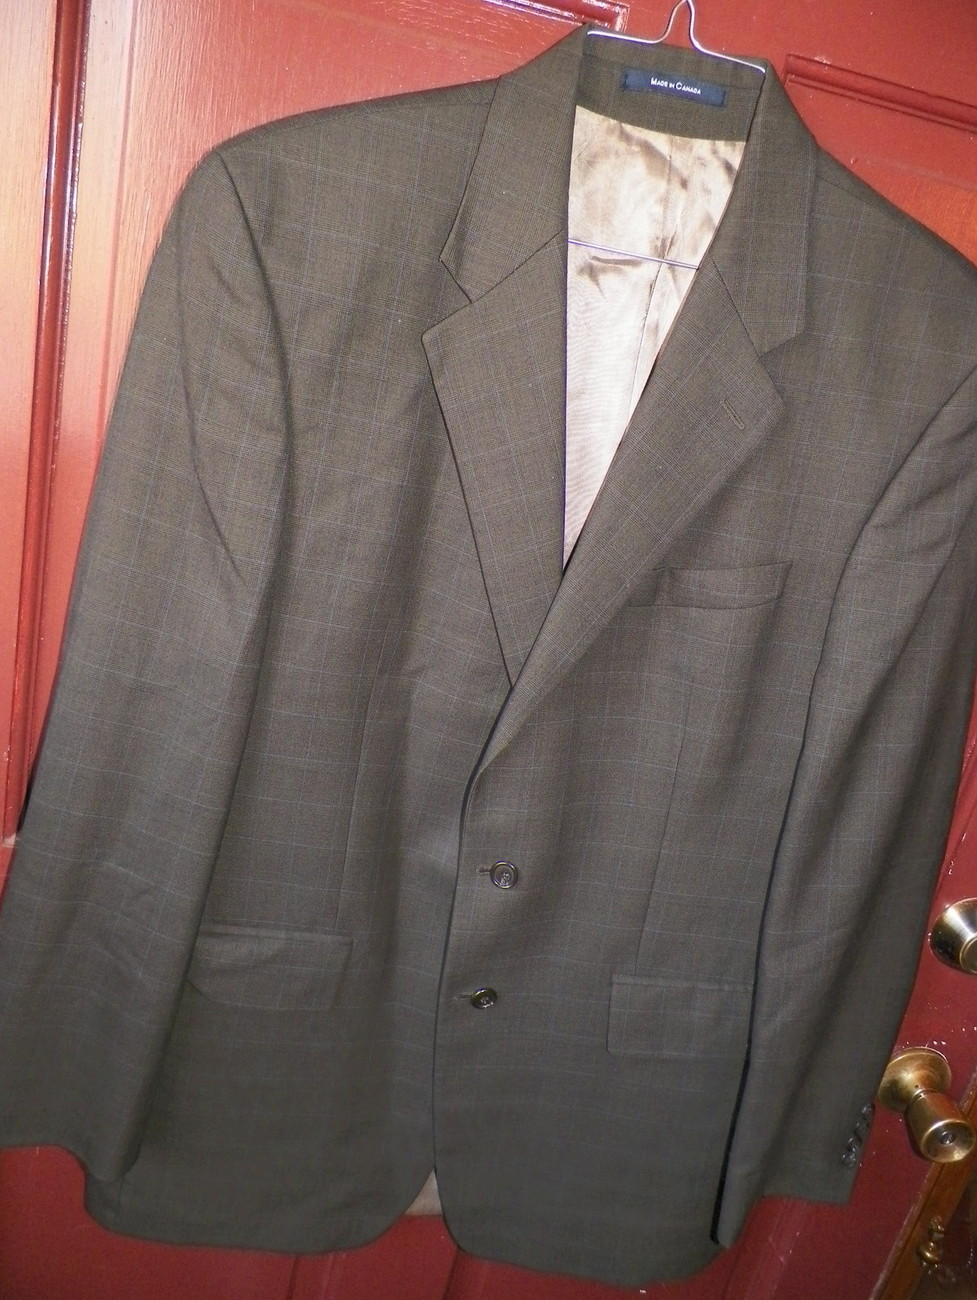 Buy men blazers & lawsuits - Chaps Ralph Lauren Men\'s Blazer Wool & Cashmere size 42 Tall - Stone - Regular 42